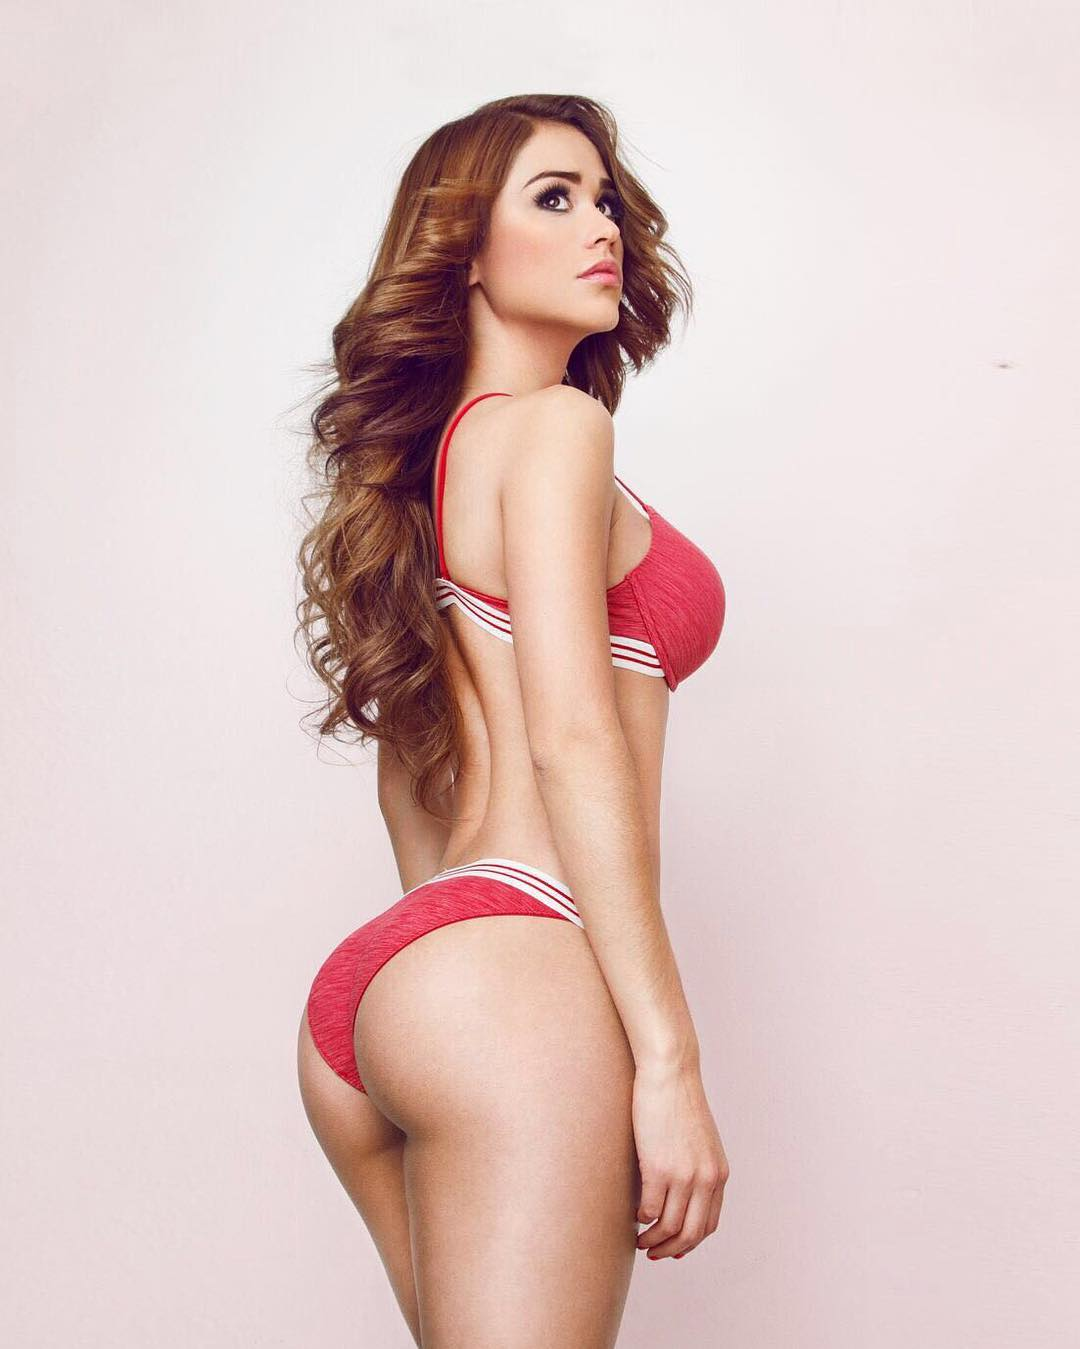 sexy mexican woman naked images